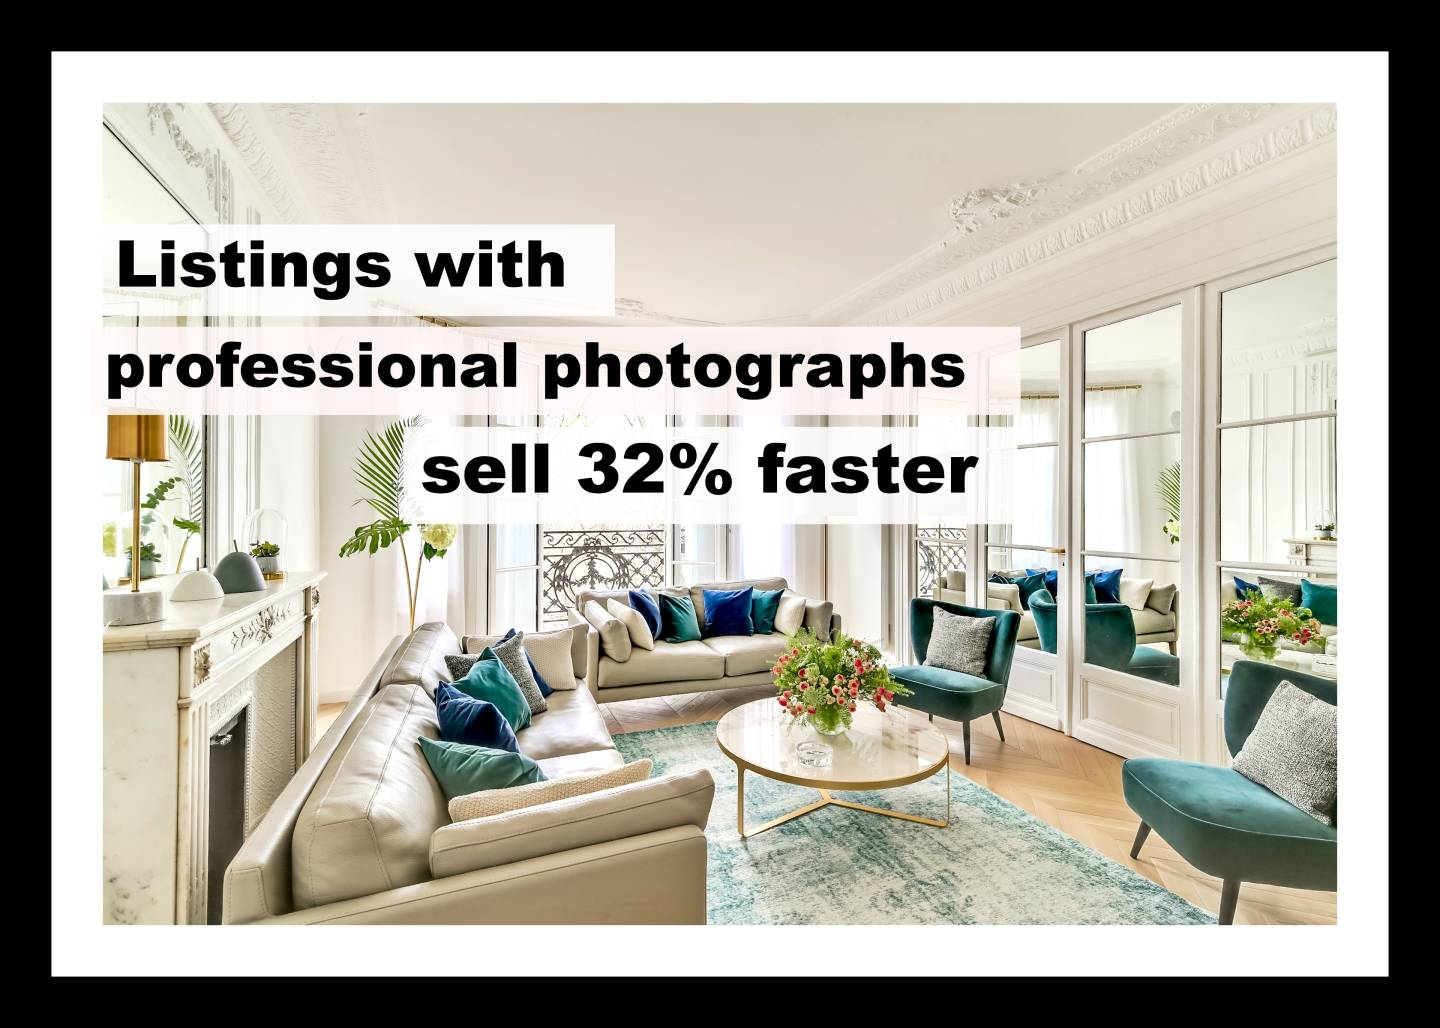 Listings with professional photographs sell 32% faster